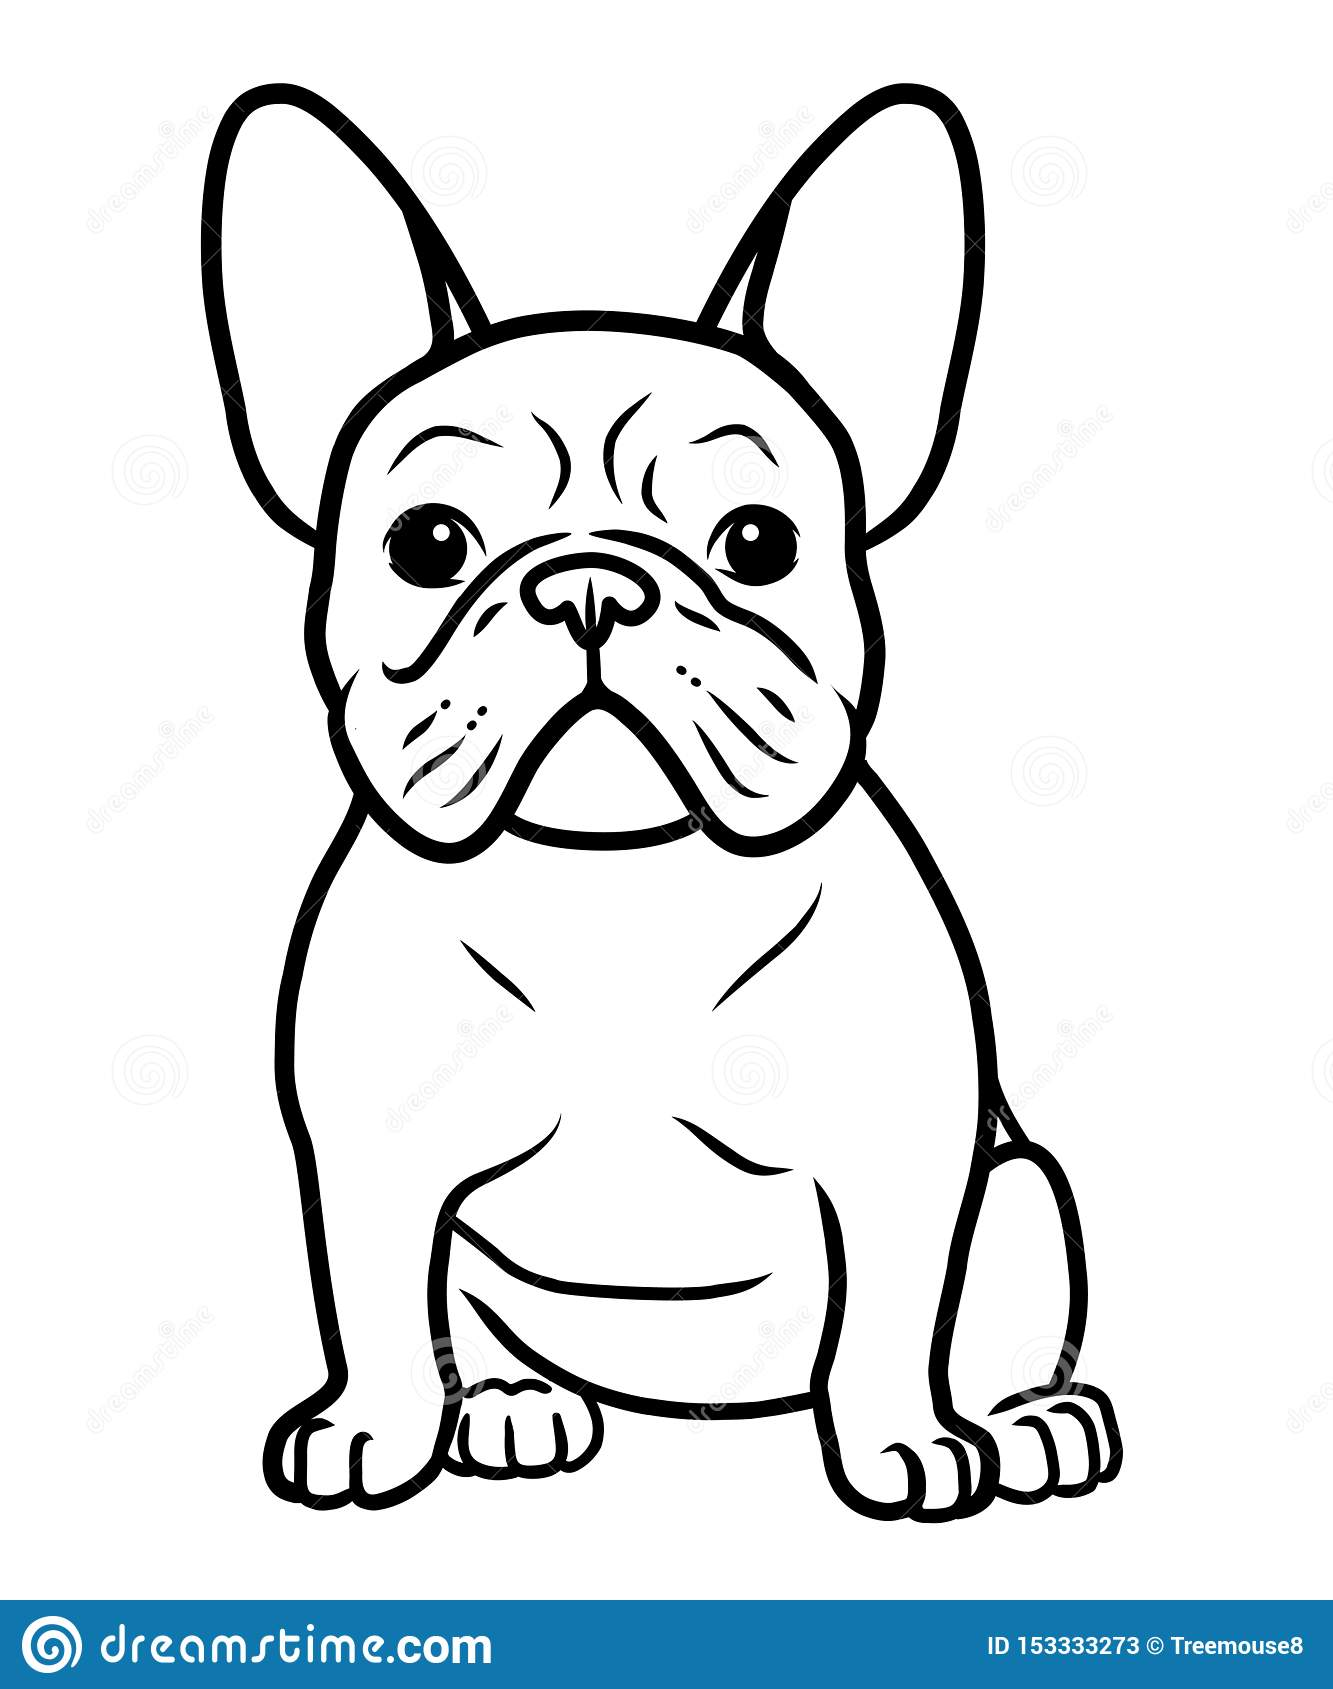 Bulldog Coloring Pages - Best Coloring Pages For Kids | 1689x1333